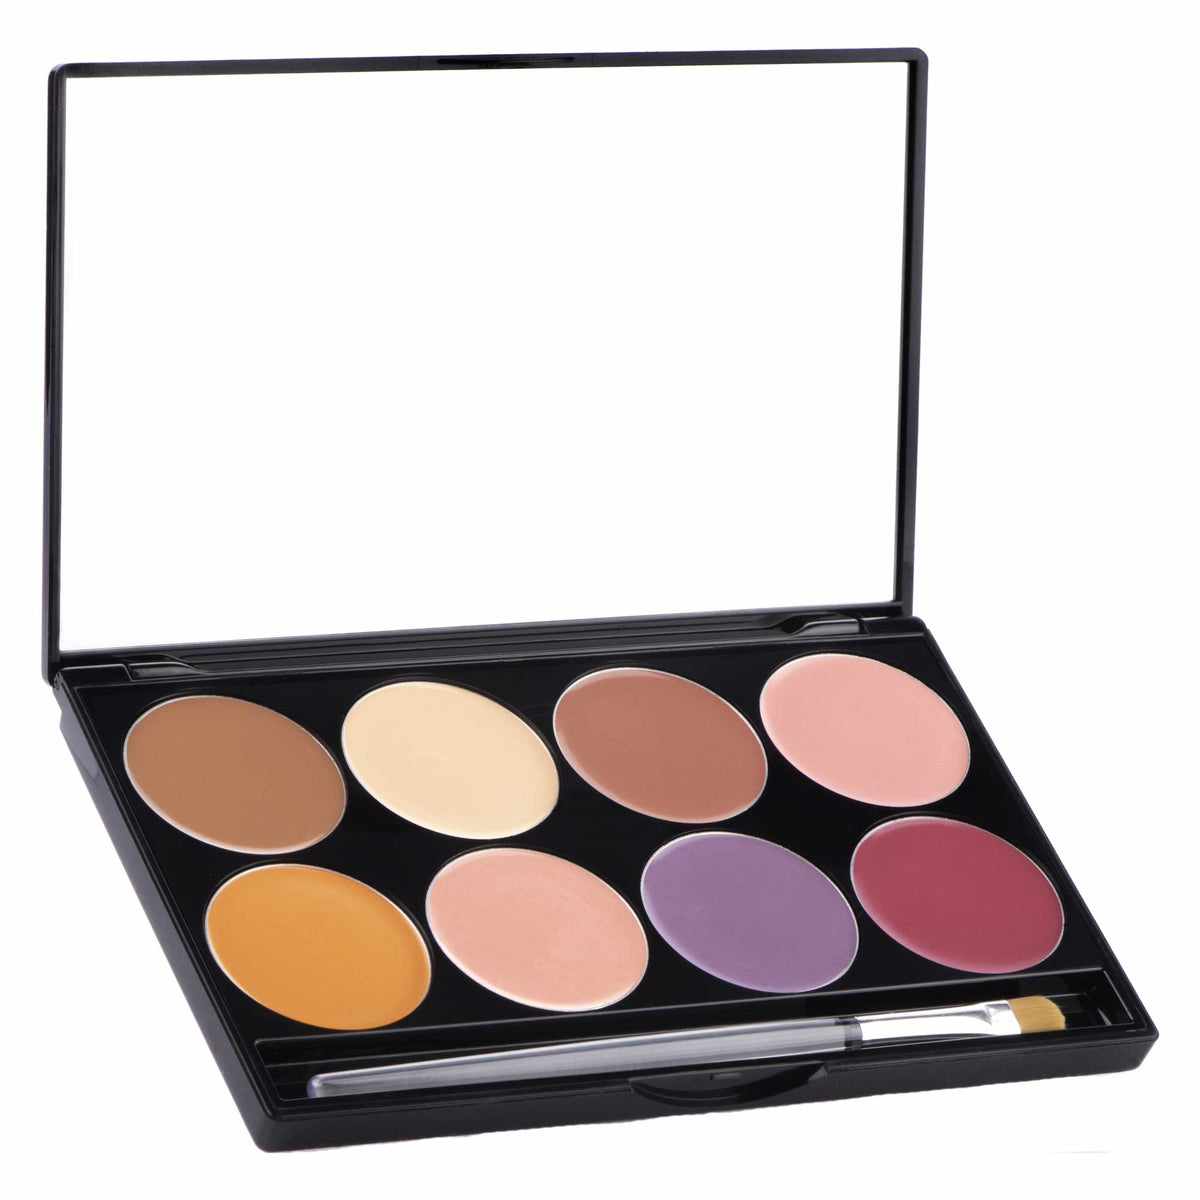 Mehron CHEEK Cream 8 Palette - Blush & Contour